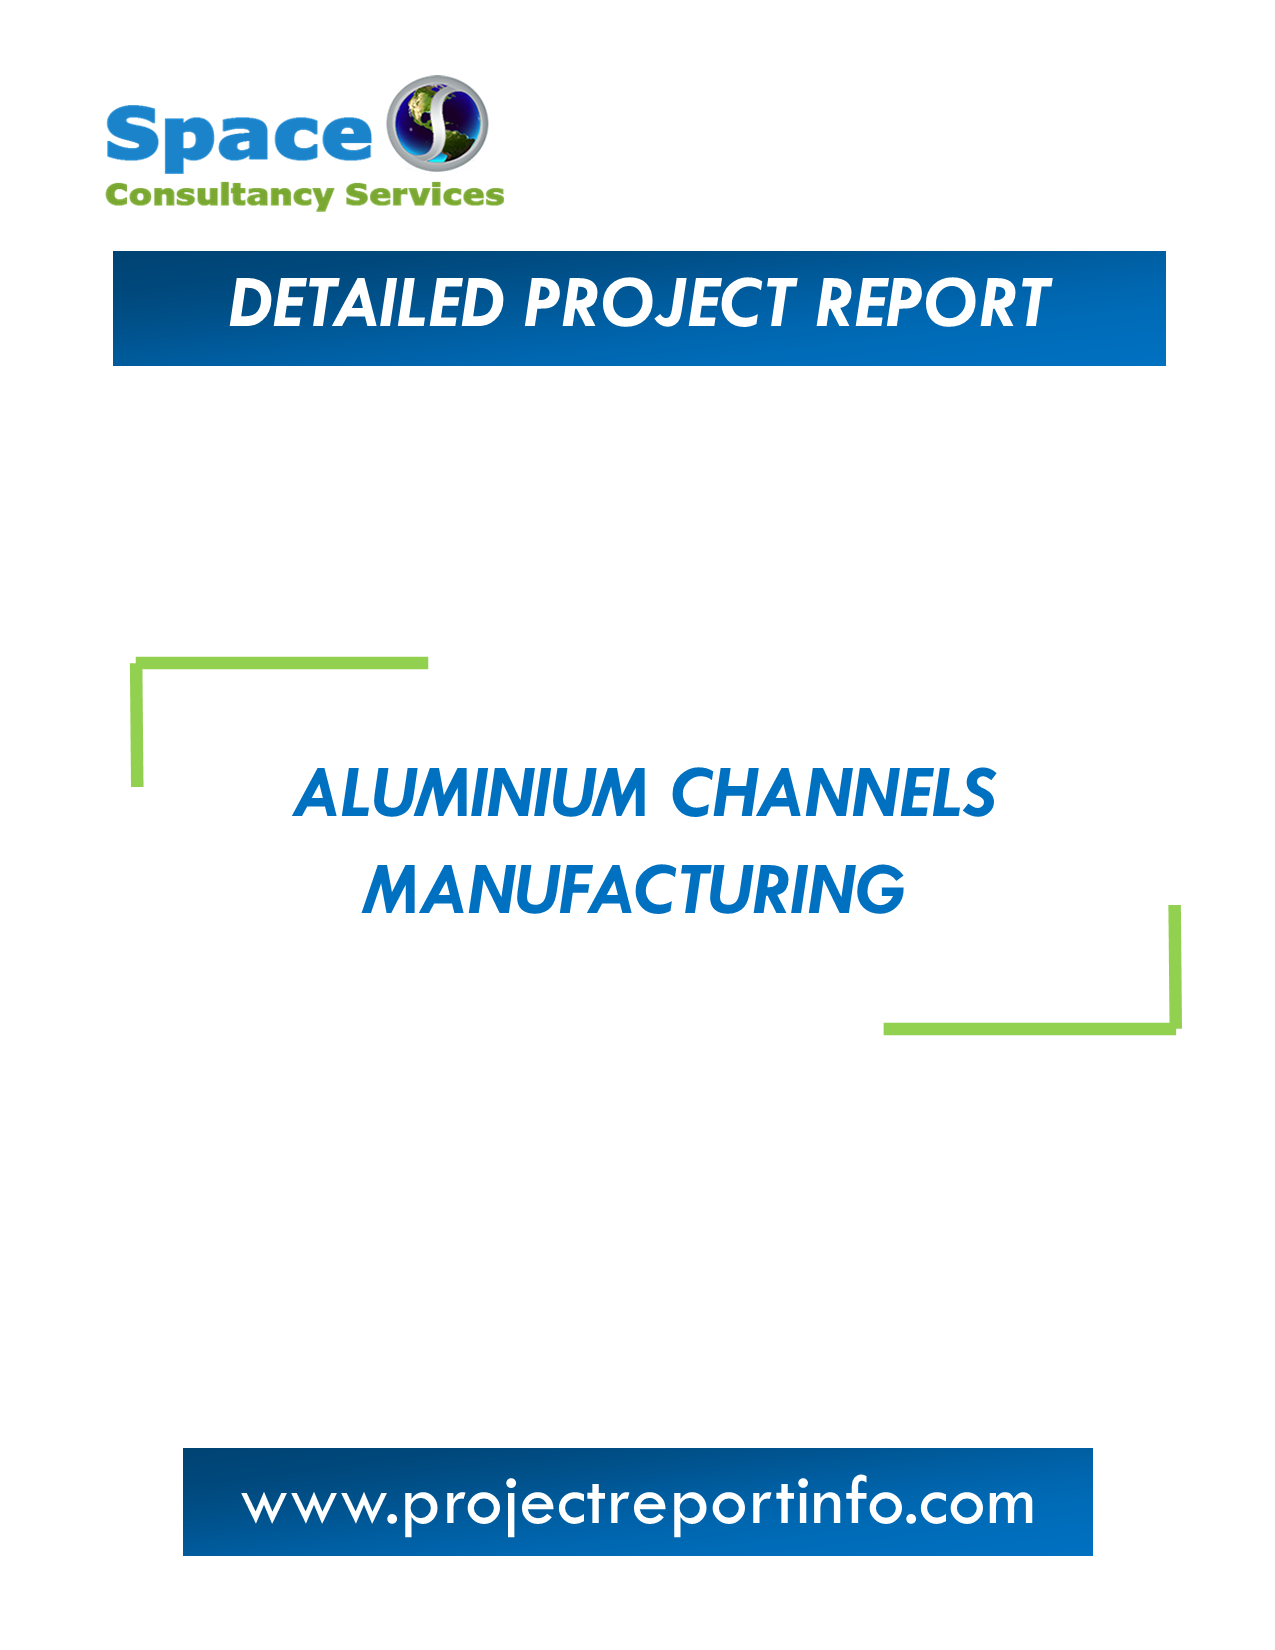 Project Report on Aluminium Channels Manufacturing